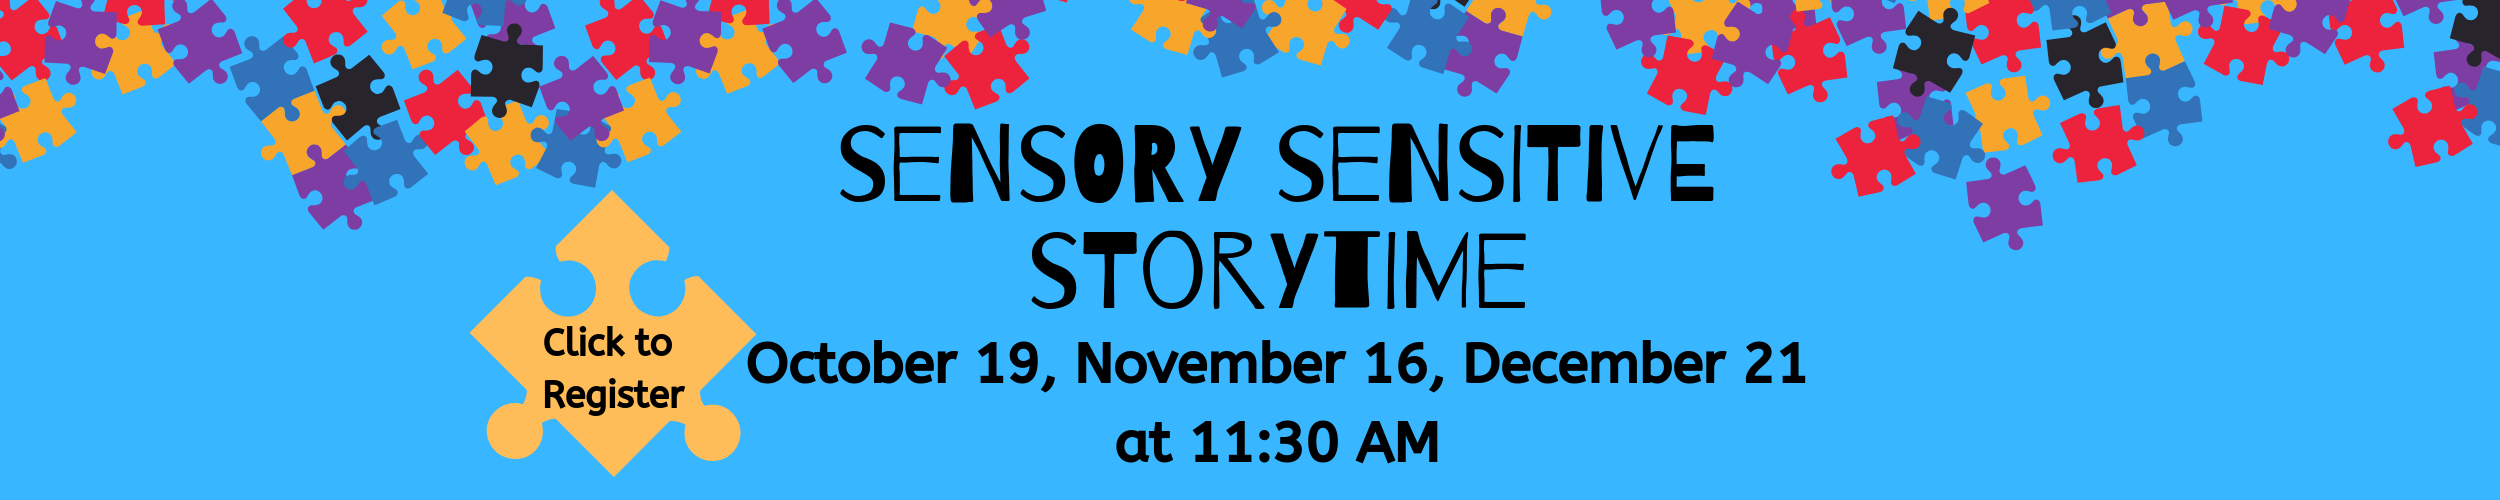 puzzle pieces in different colors with sensory storytime event info